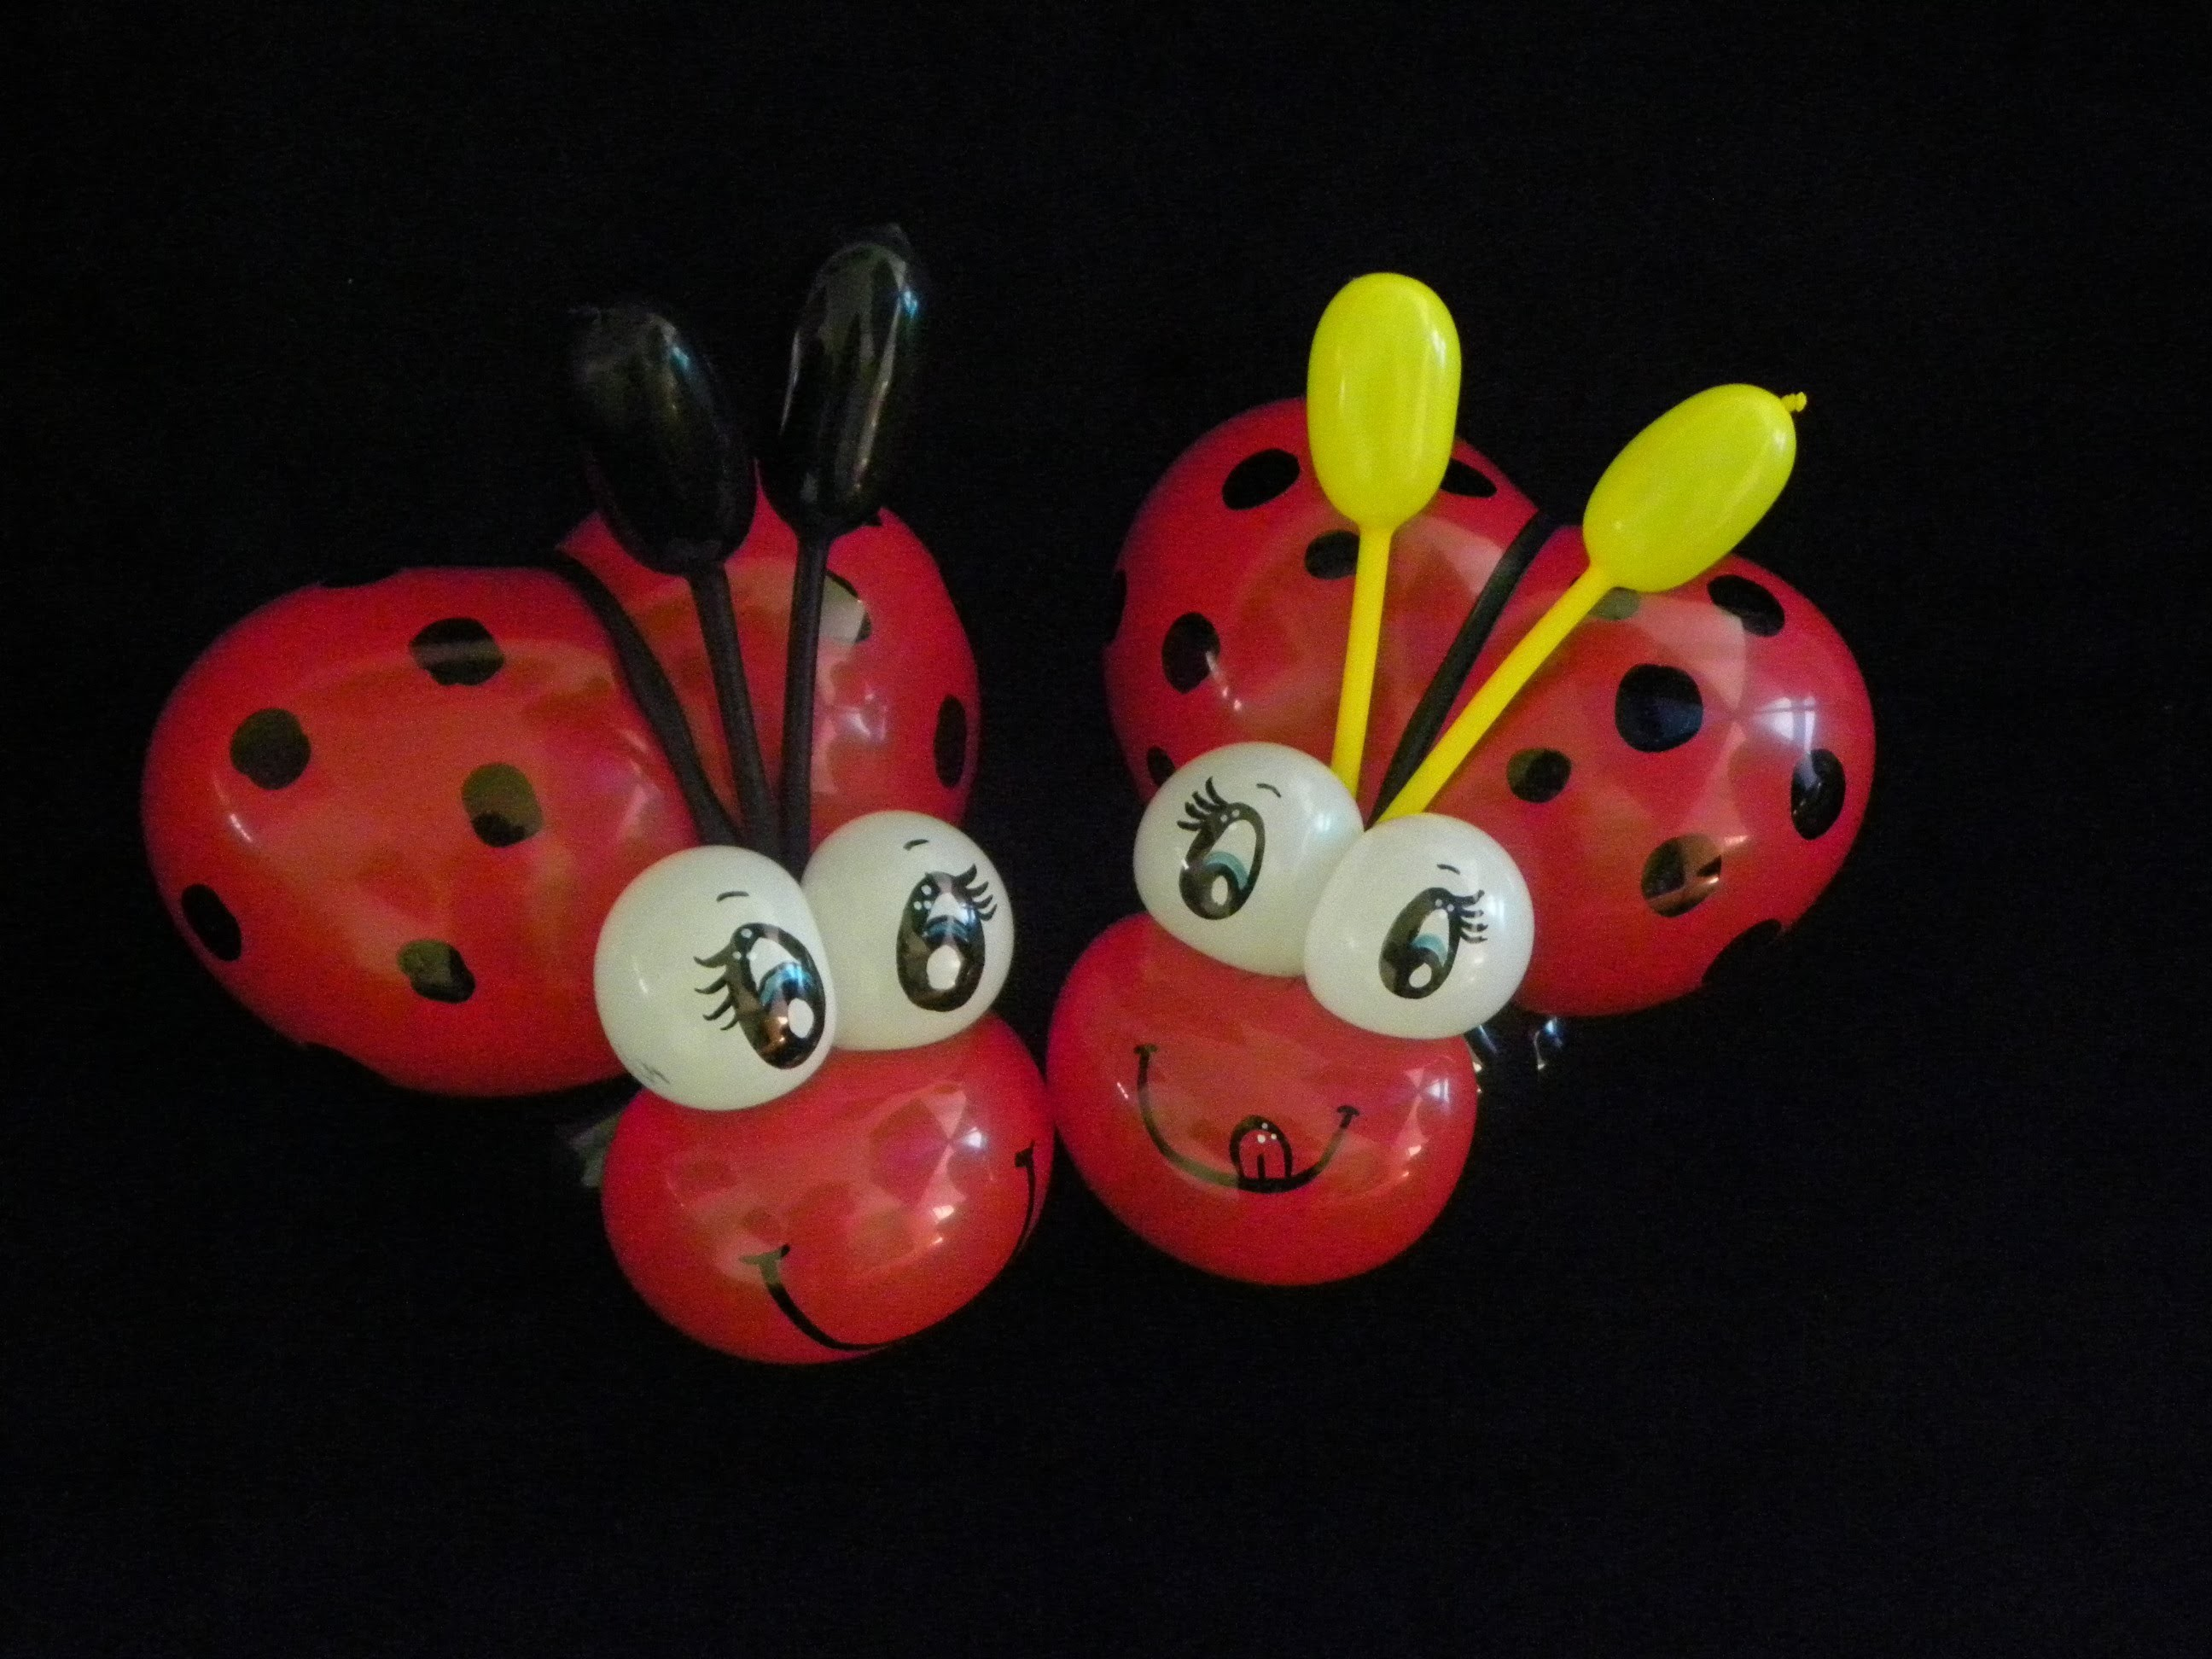 COMO HACER UNA CATARINA O MARIQUITA.- HOW TO MAKE A LADYBUG